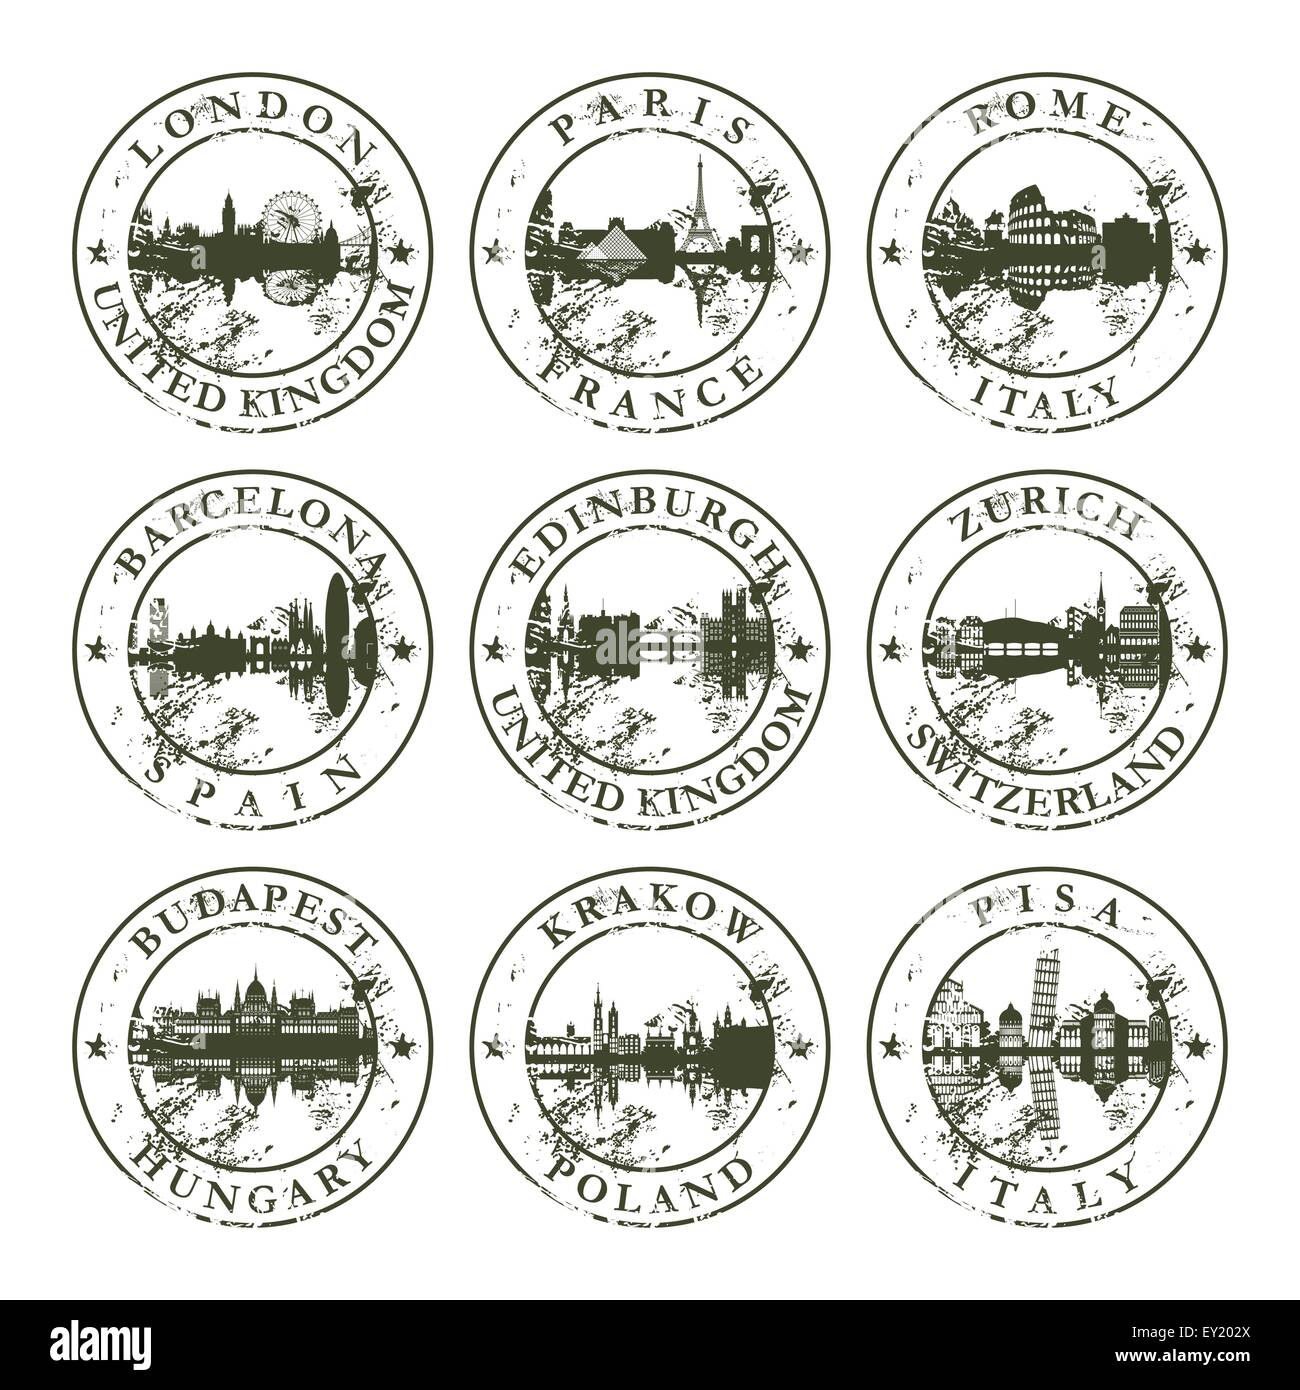 Grunge rubber stamps with London, Paris, Rome, Barcelona, Edinburgh, Zurich, Budapest, Krakow and Pisa - vector - Stock Vector